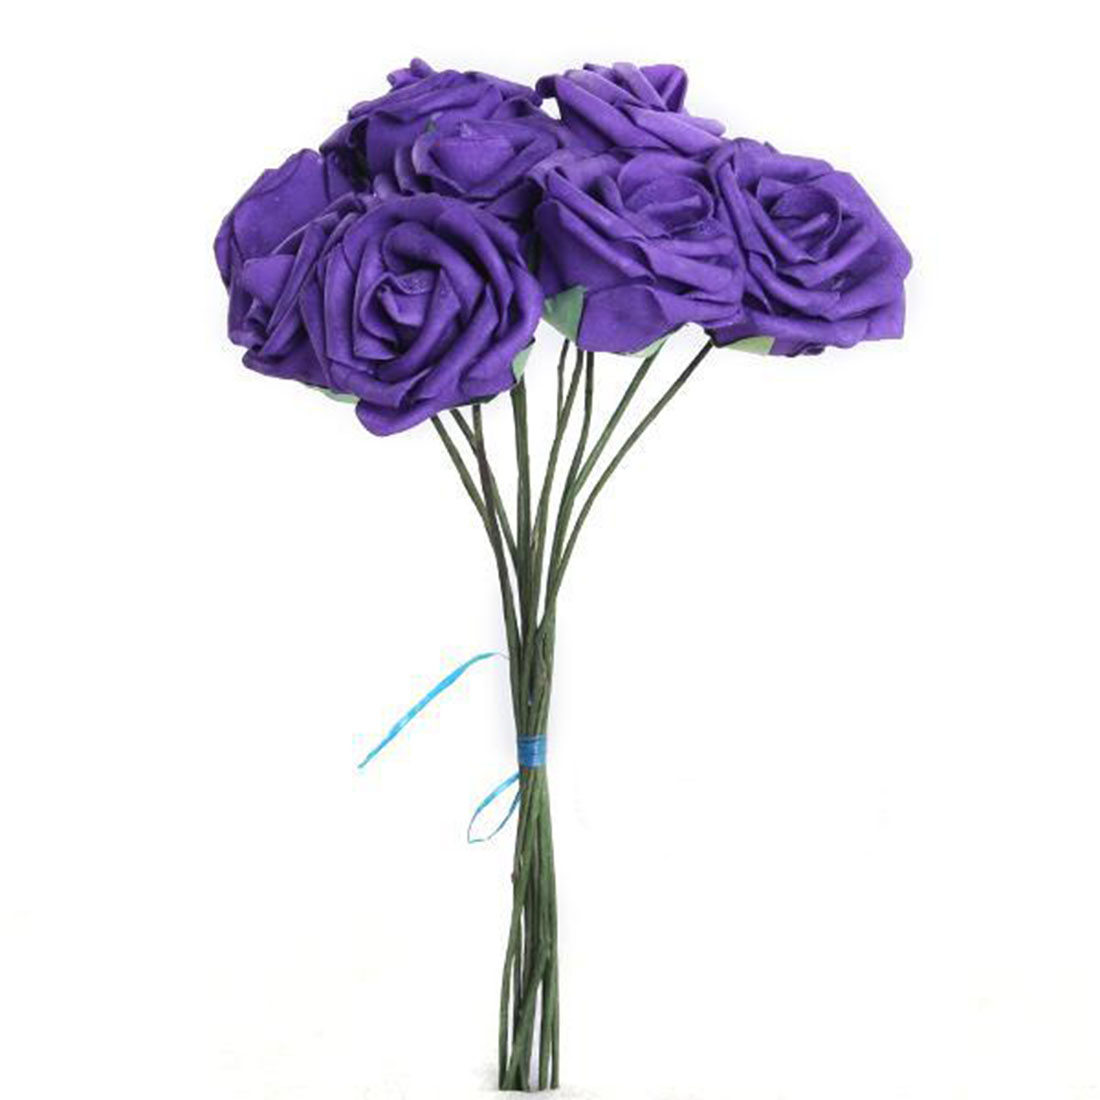 Free shipping new 7cm purple artificial flowers fake rose flower aeproducttsubject izmirmasajfo Images